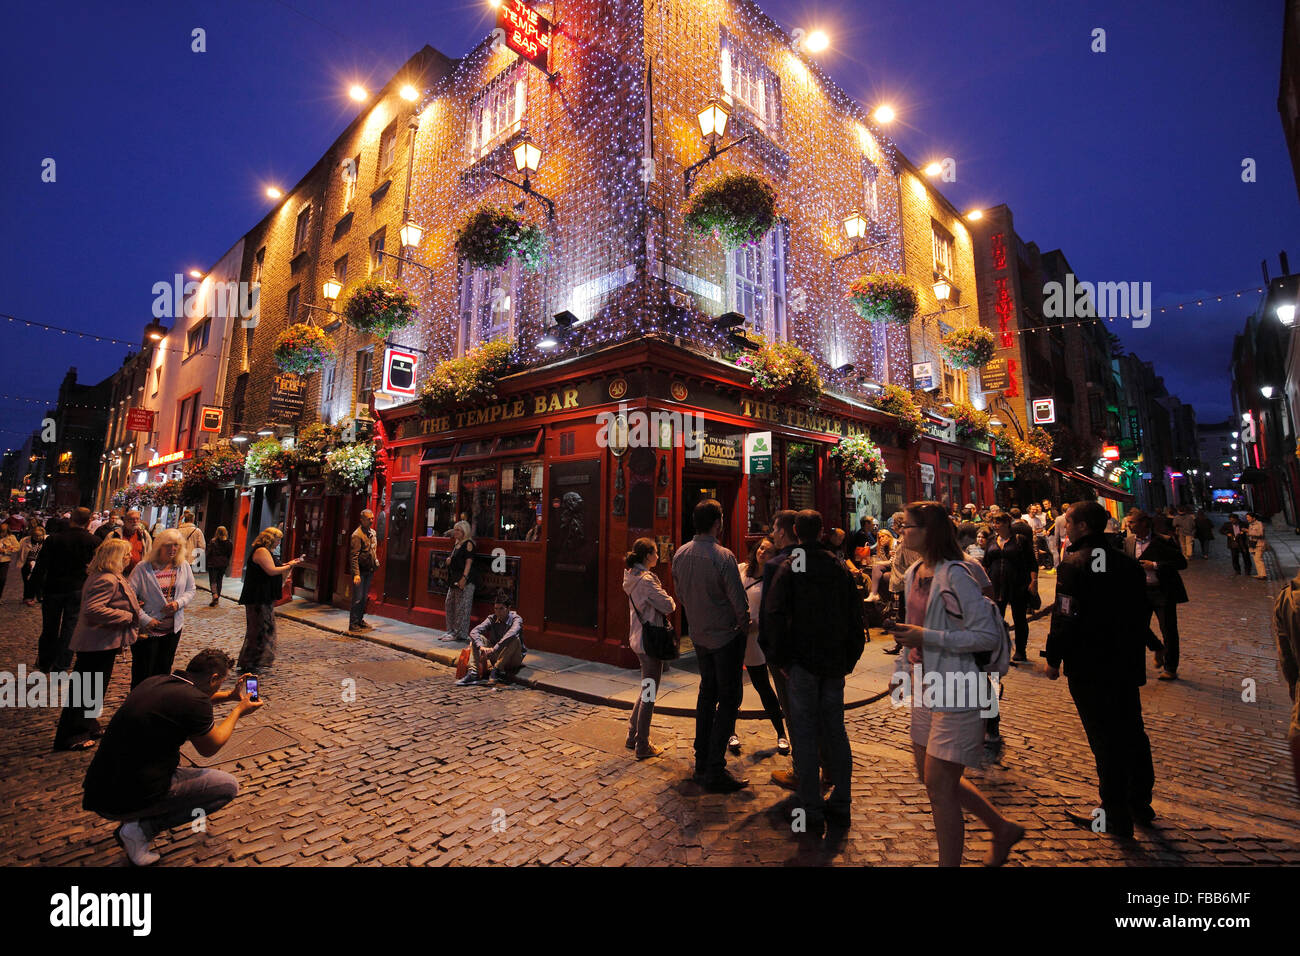 The Temple Bar in Dublin - Stock Image